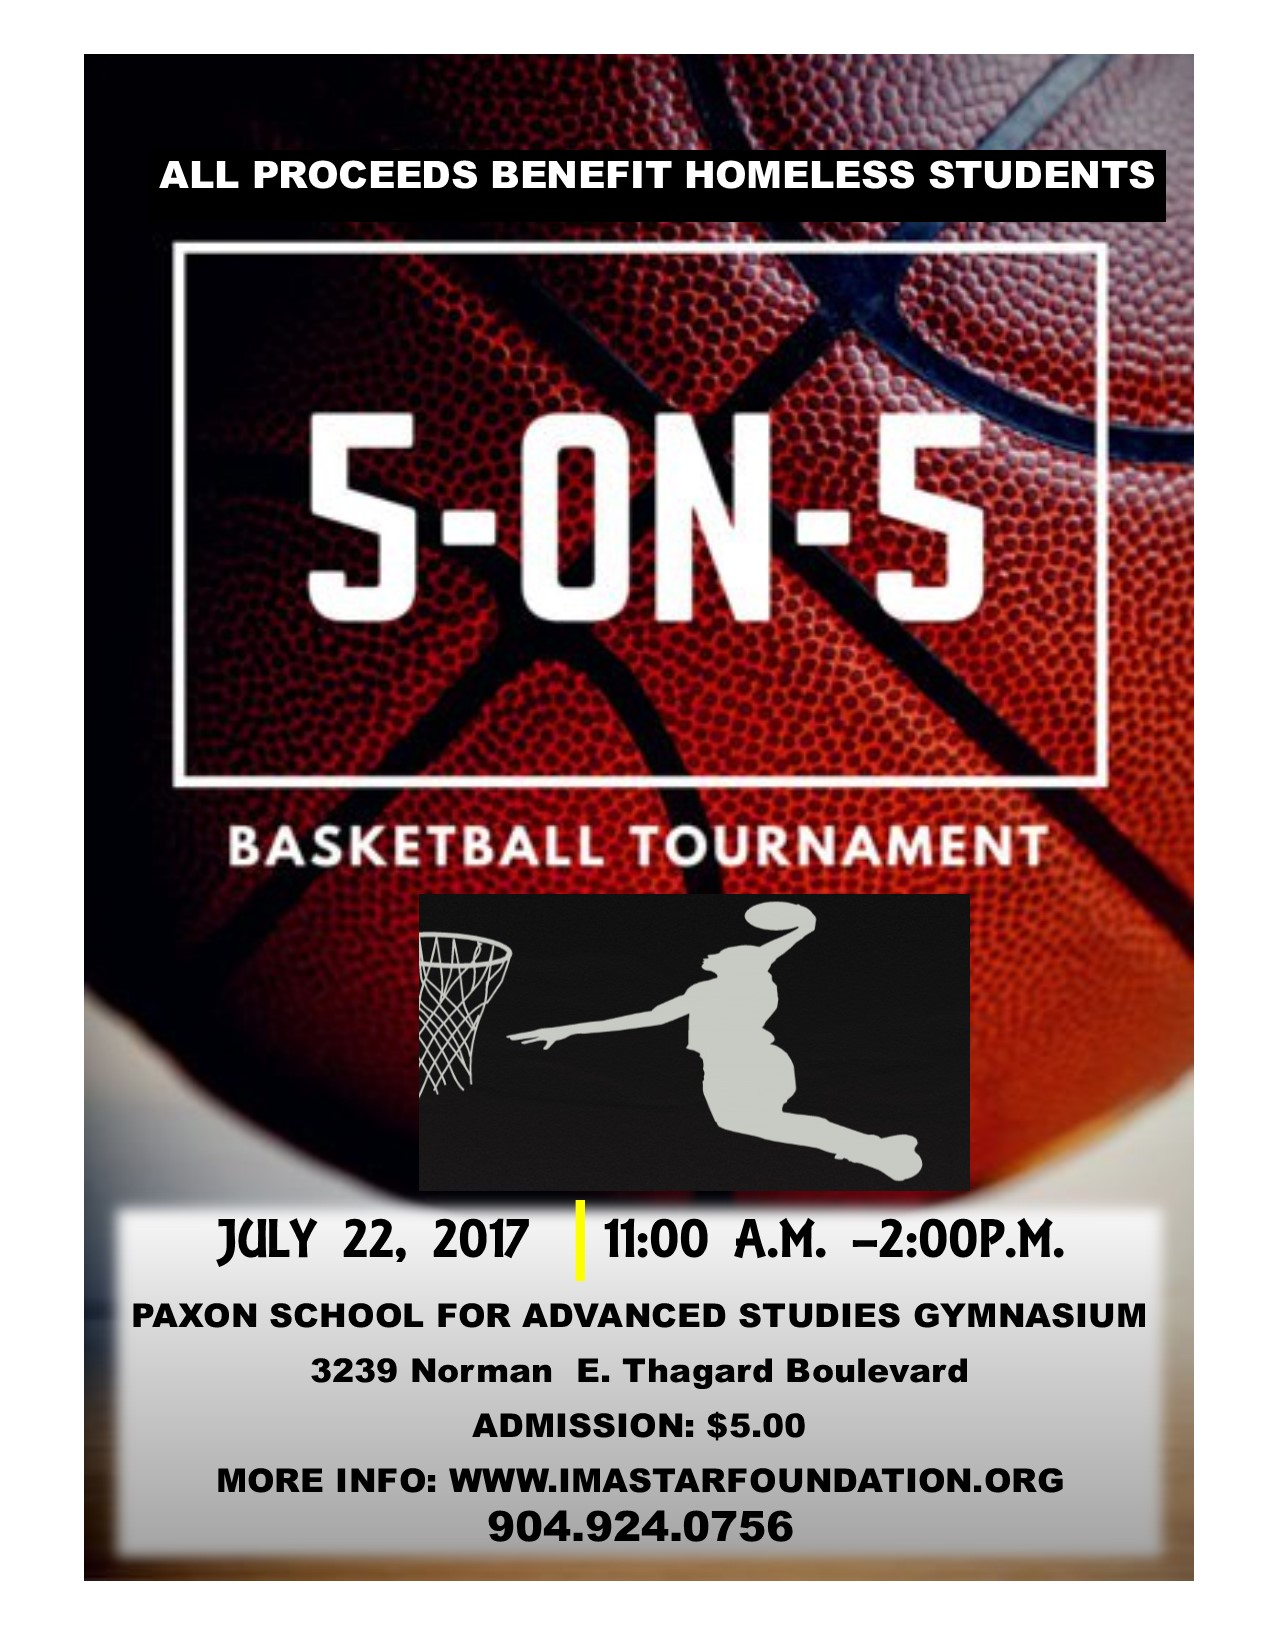 5 ON 5 BASKETBALL TOURNAMENT TO BENEFIT HOMELESS STUDENTS